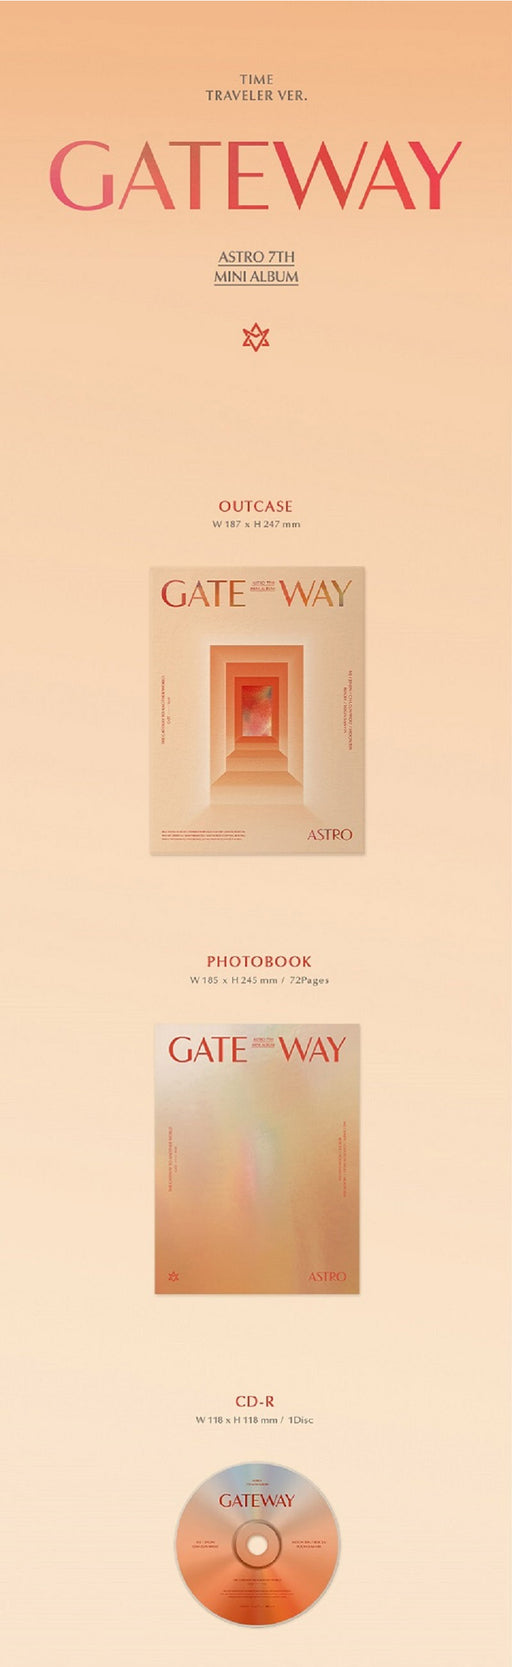 ASTRO 7th Mini Album - GATEWAY (TIME TRAVELER Ver.) CD + Poster